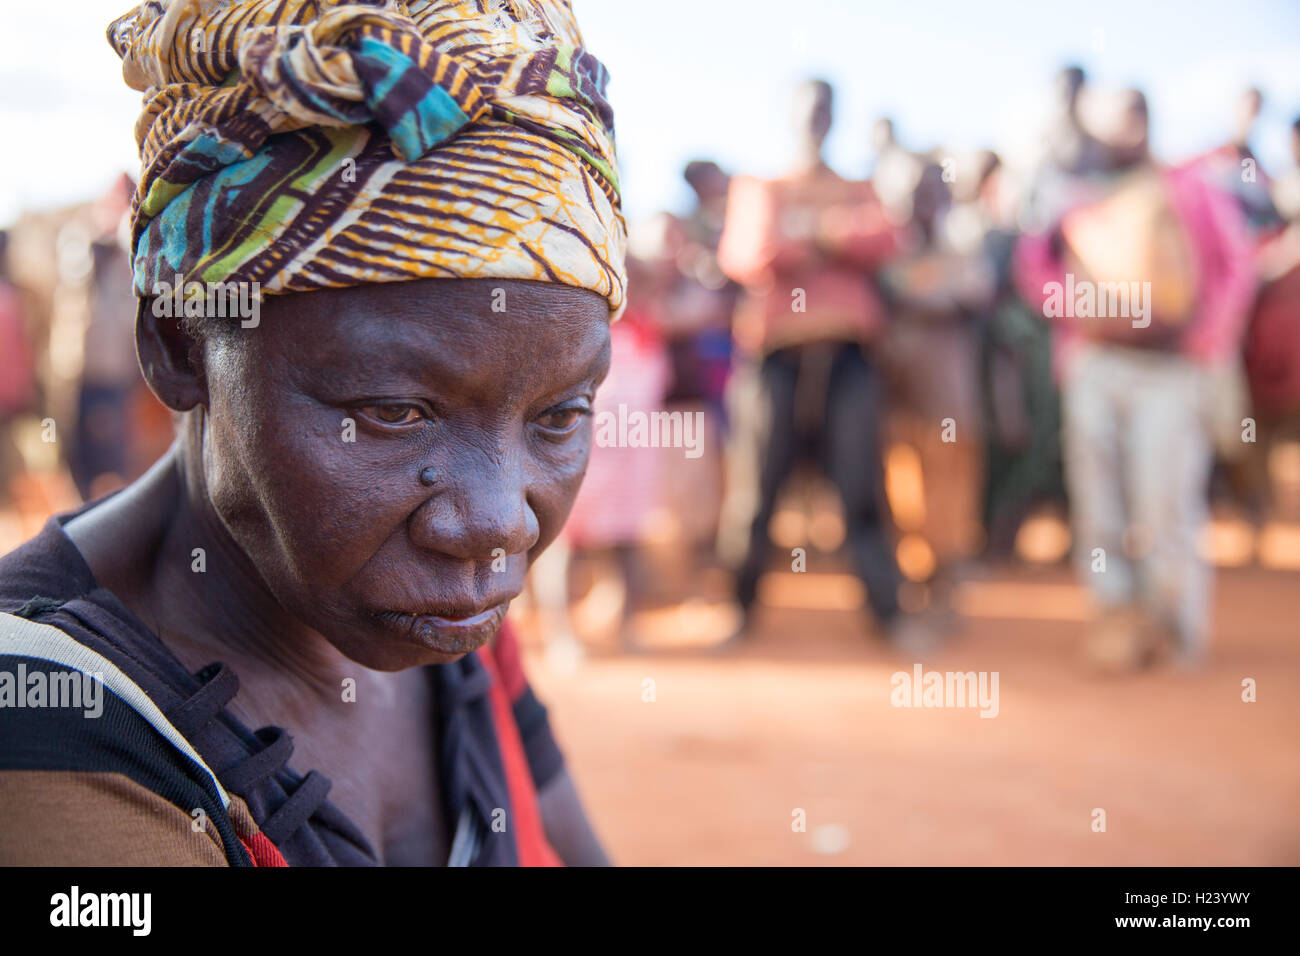 Namina village, Nampula Province, Mozambique, August 2015:  Maria Albino, 42, has been diagnosed with bilateral - Stock Image